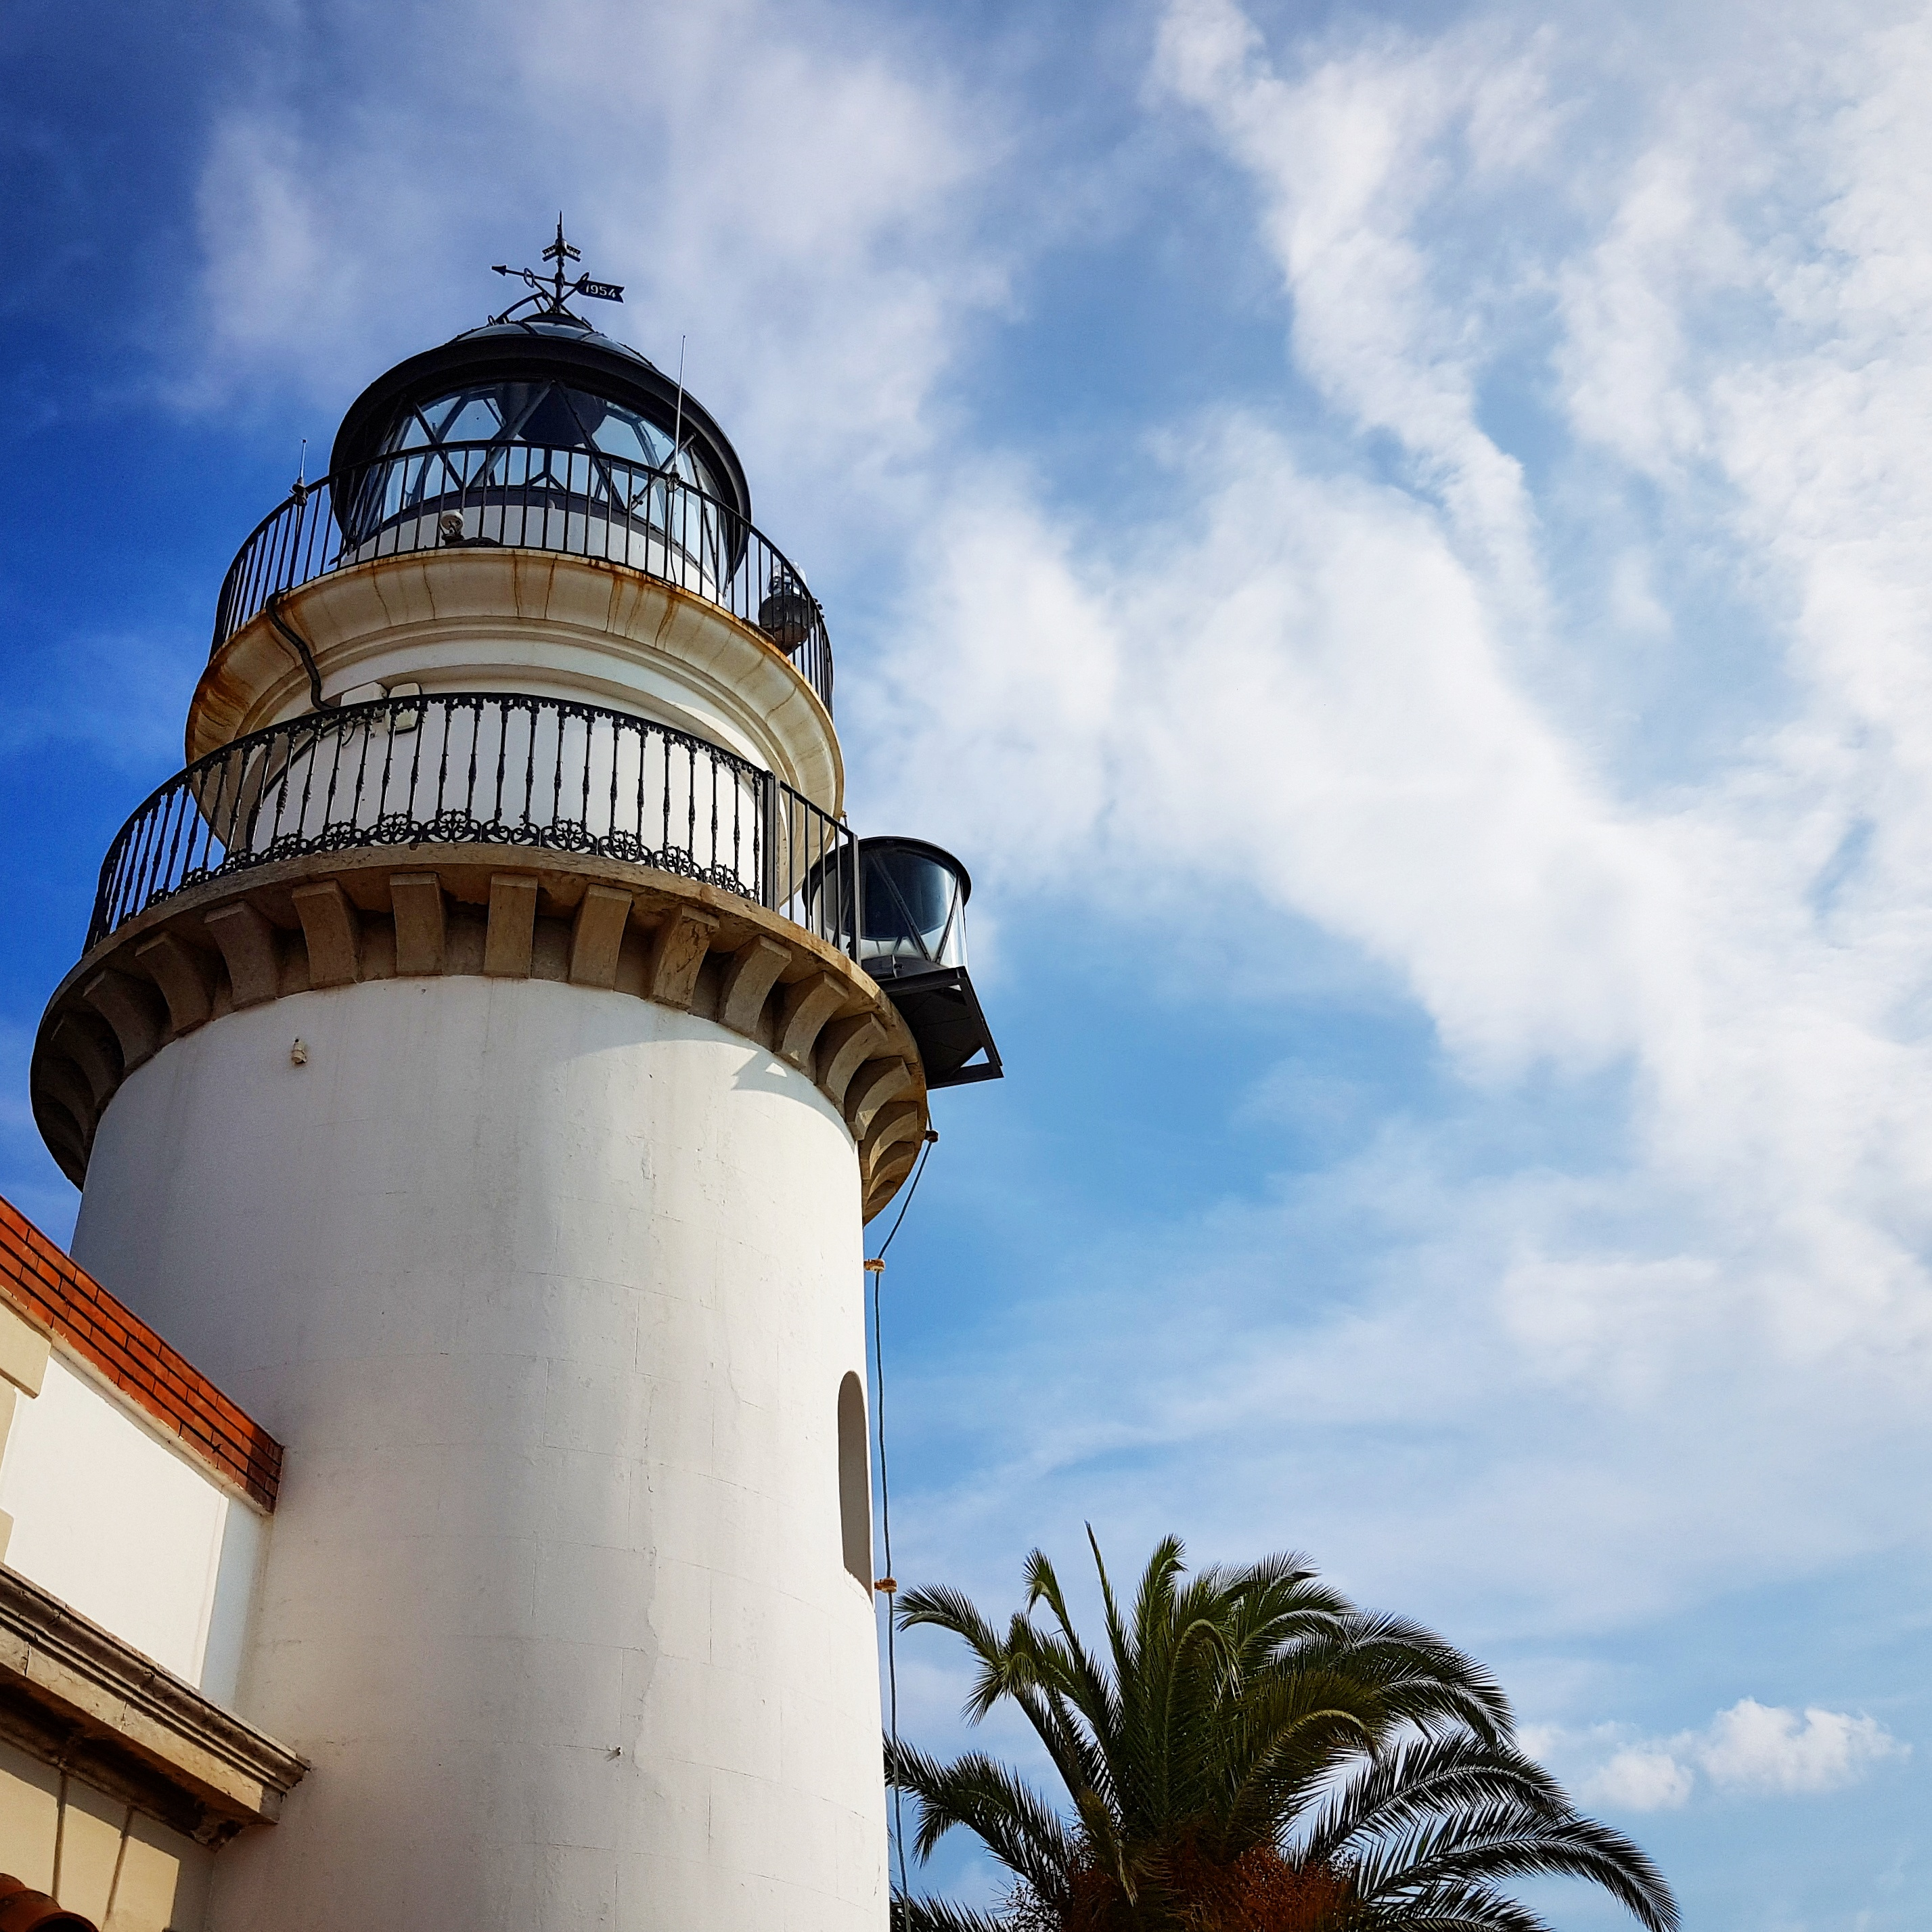 The lighthouse at Calella against the blue sky. My photo tour of Costa Barcelona